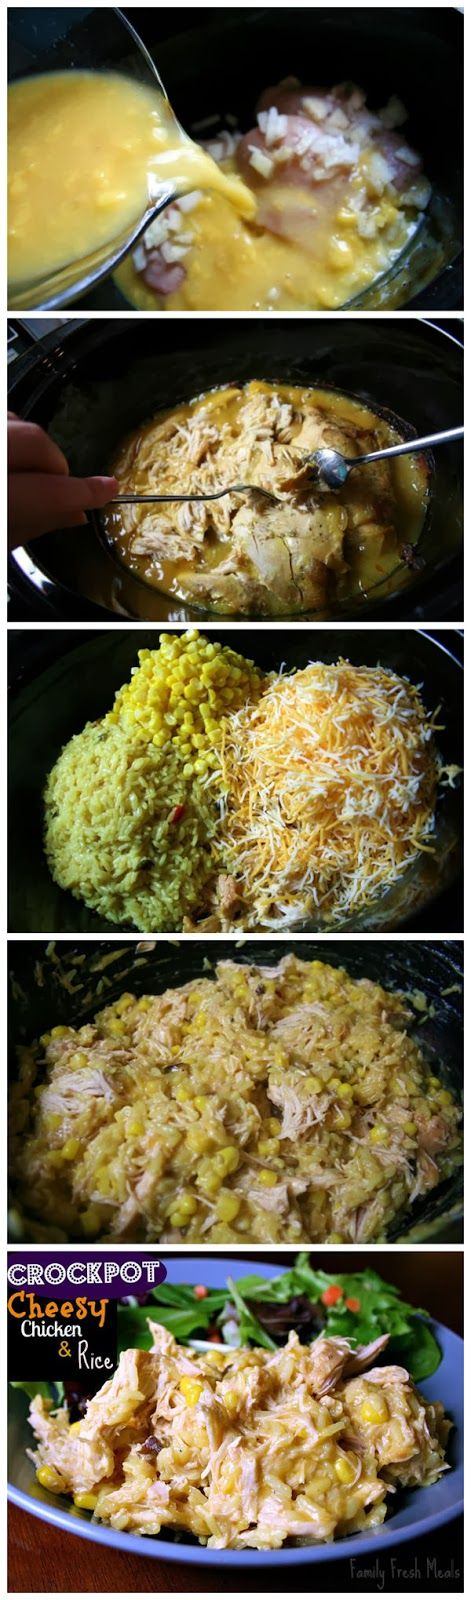 Crockpot Cheesy Chicken & Rice